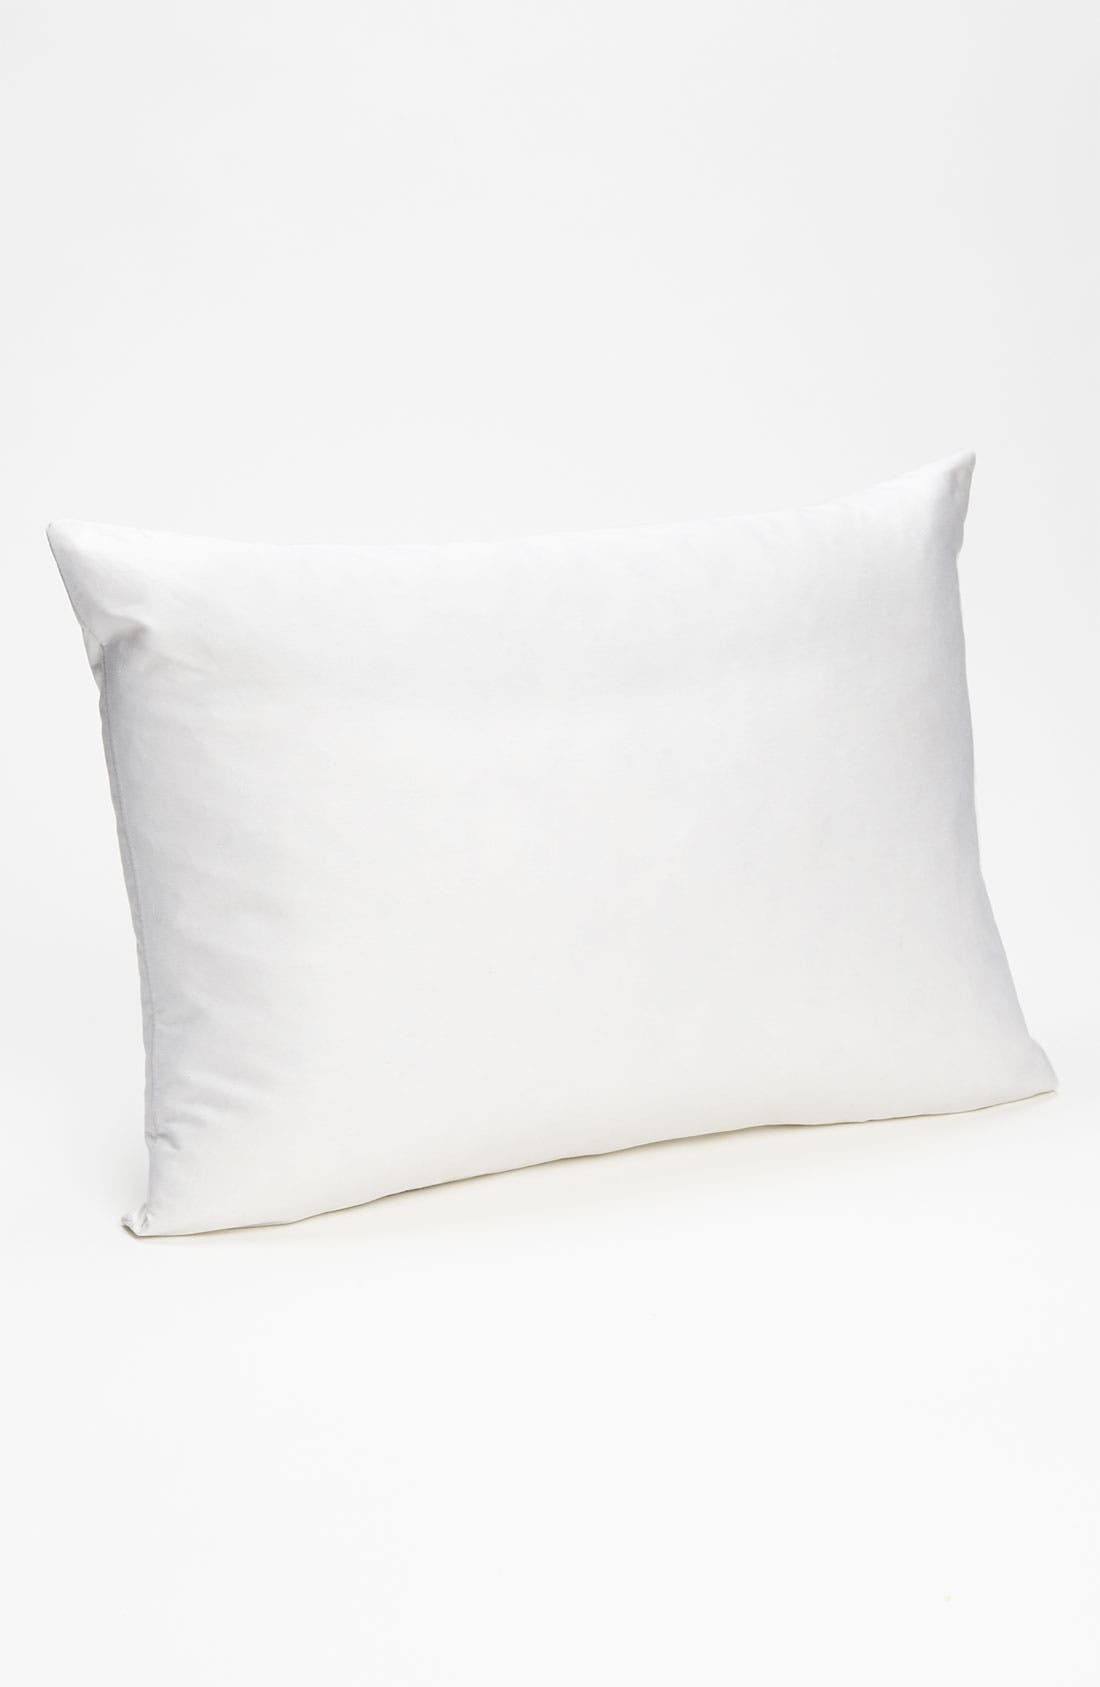 Main Image - Nordstrom at Home 14x20 Feather & Down Pillow Insert (2 for $24)